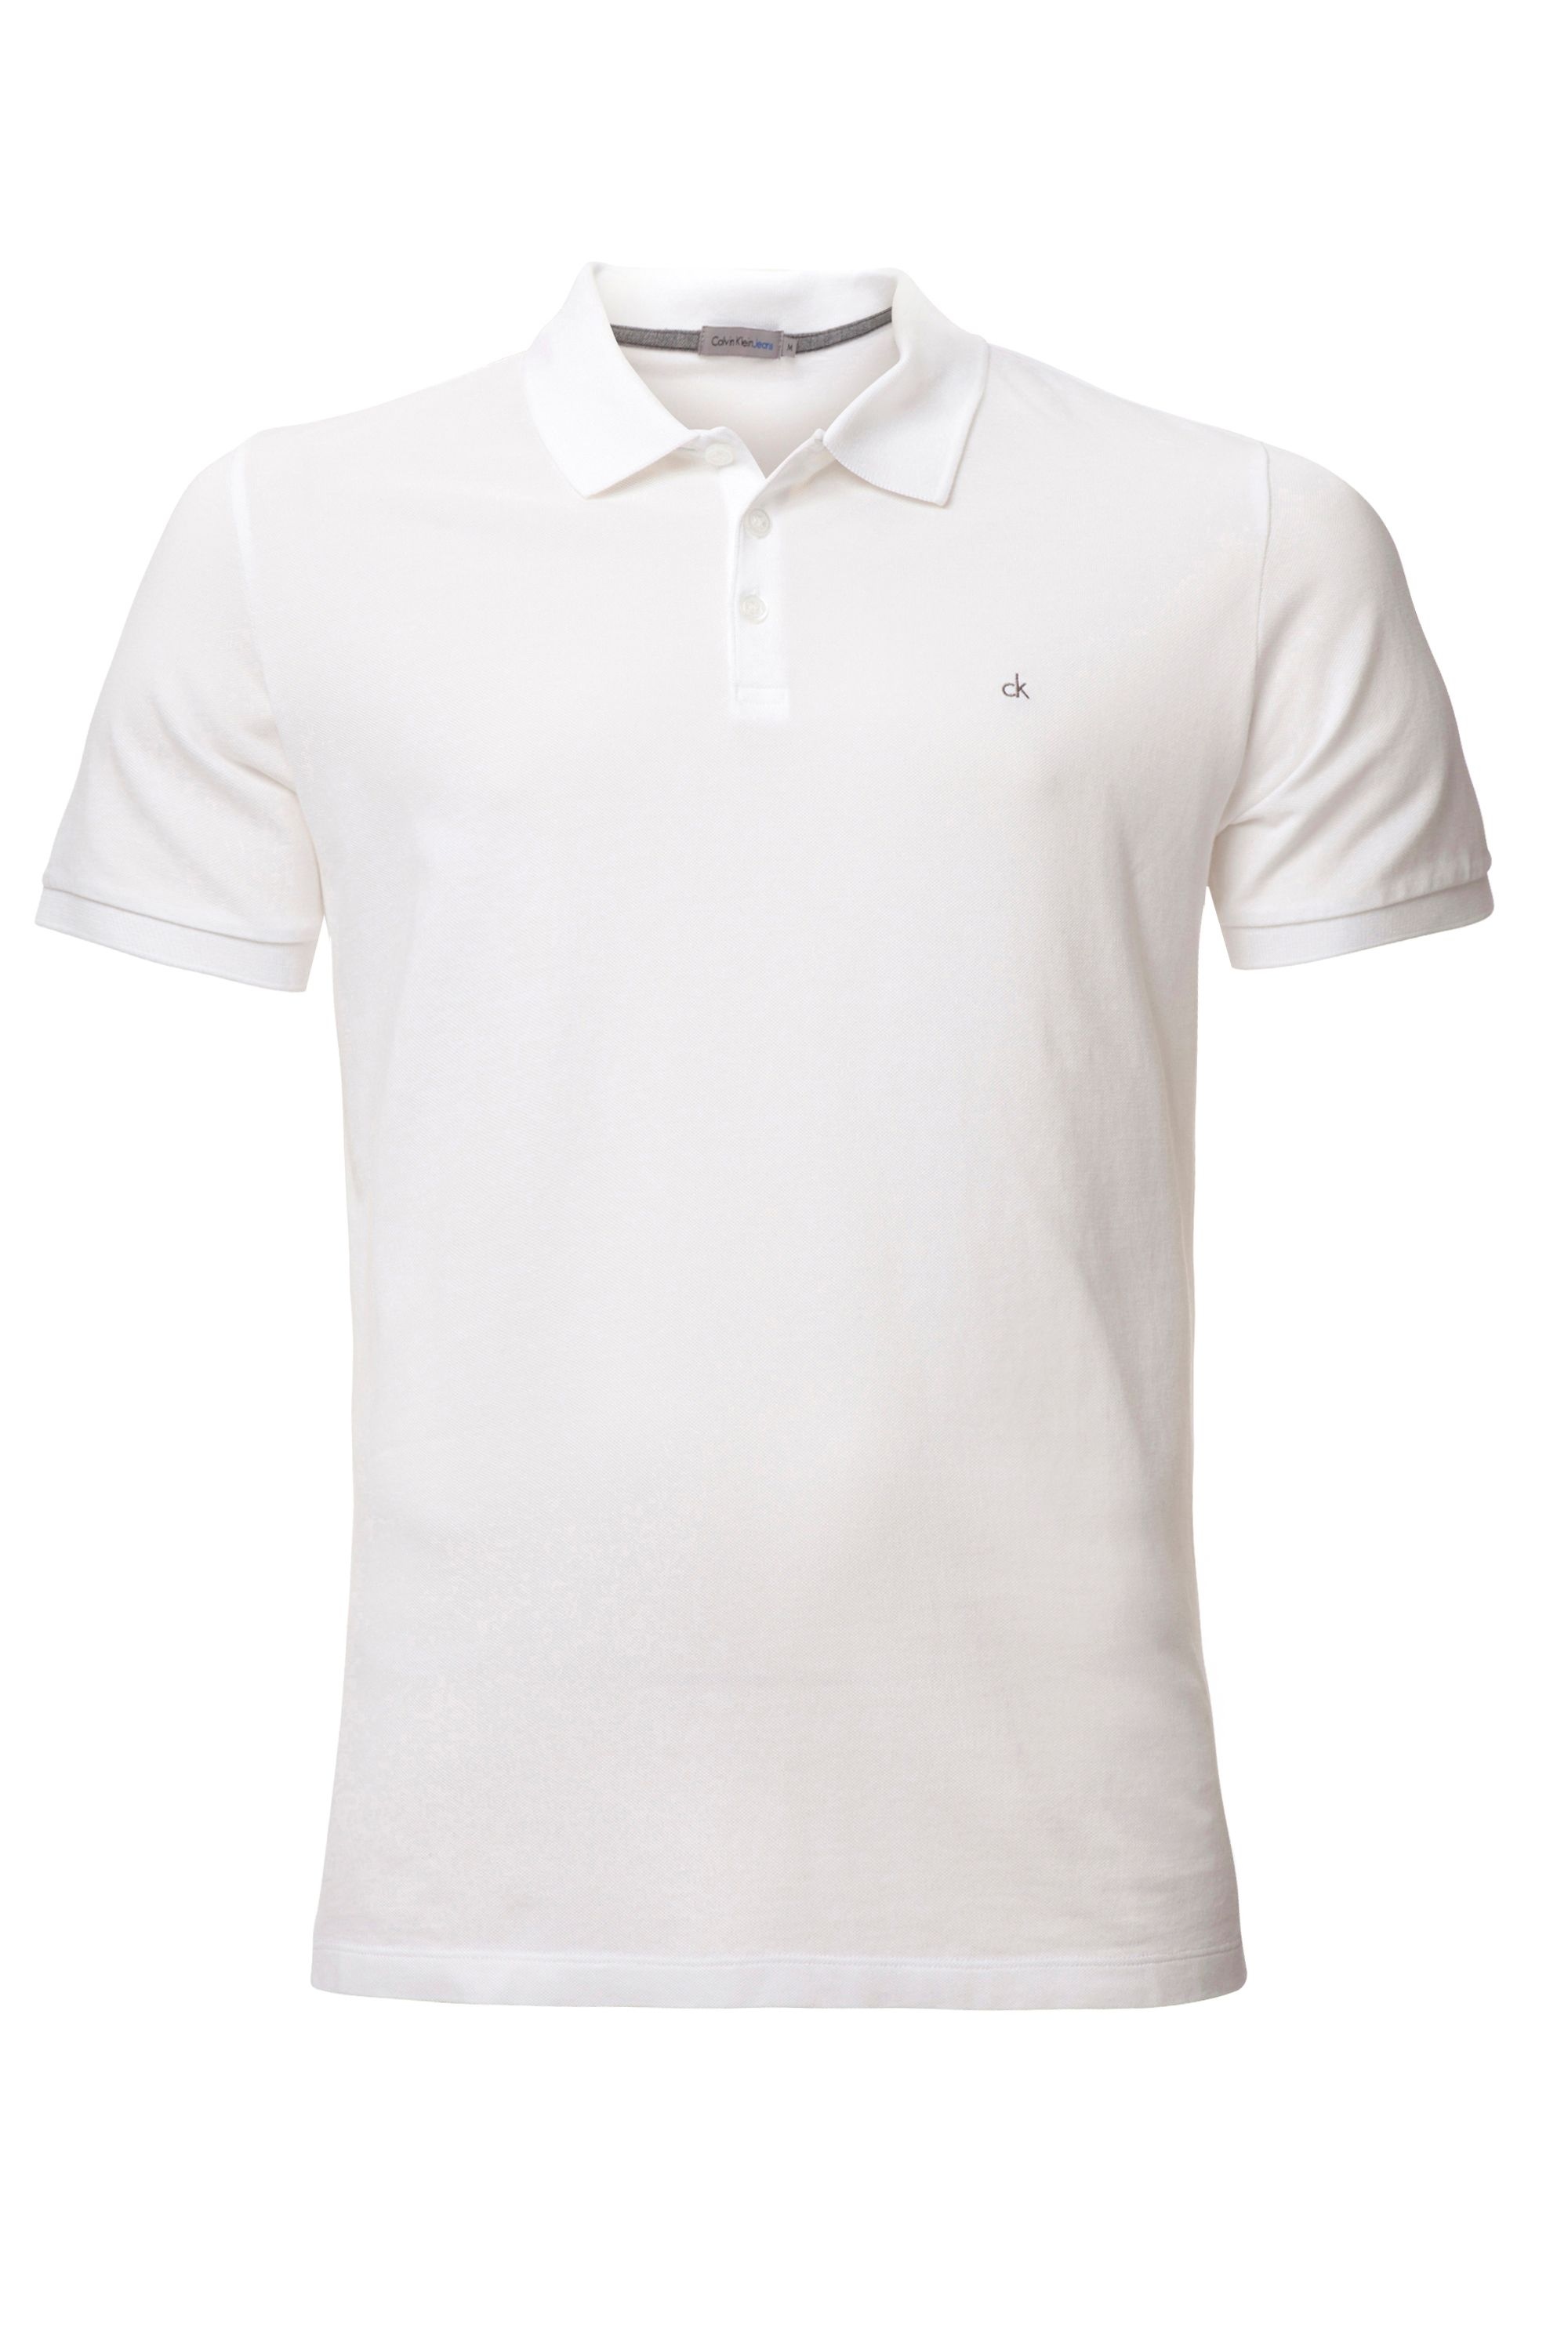 Men's Calvin Klein Paul Polo Shirt, White